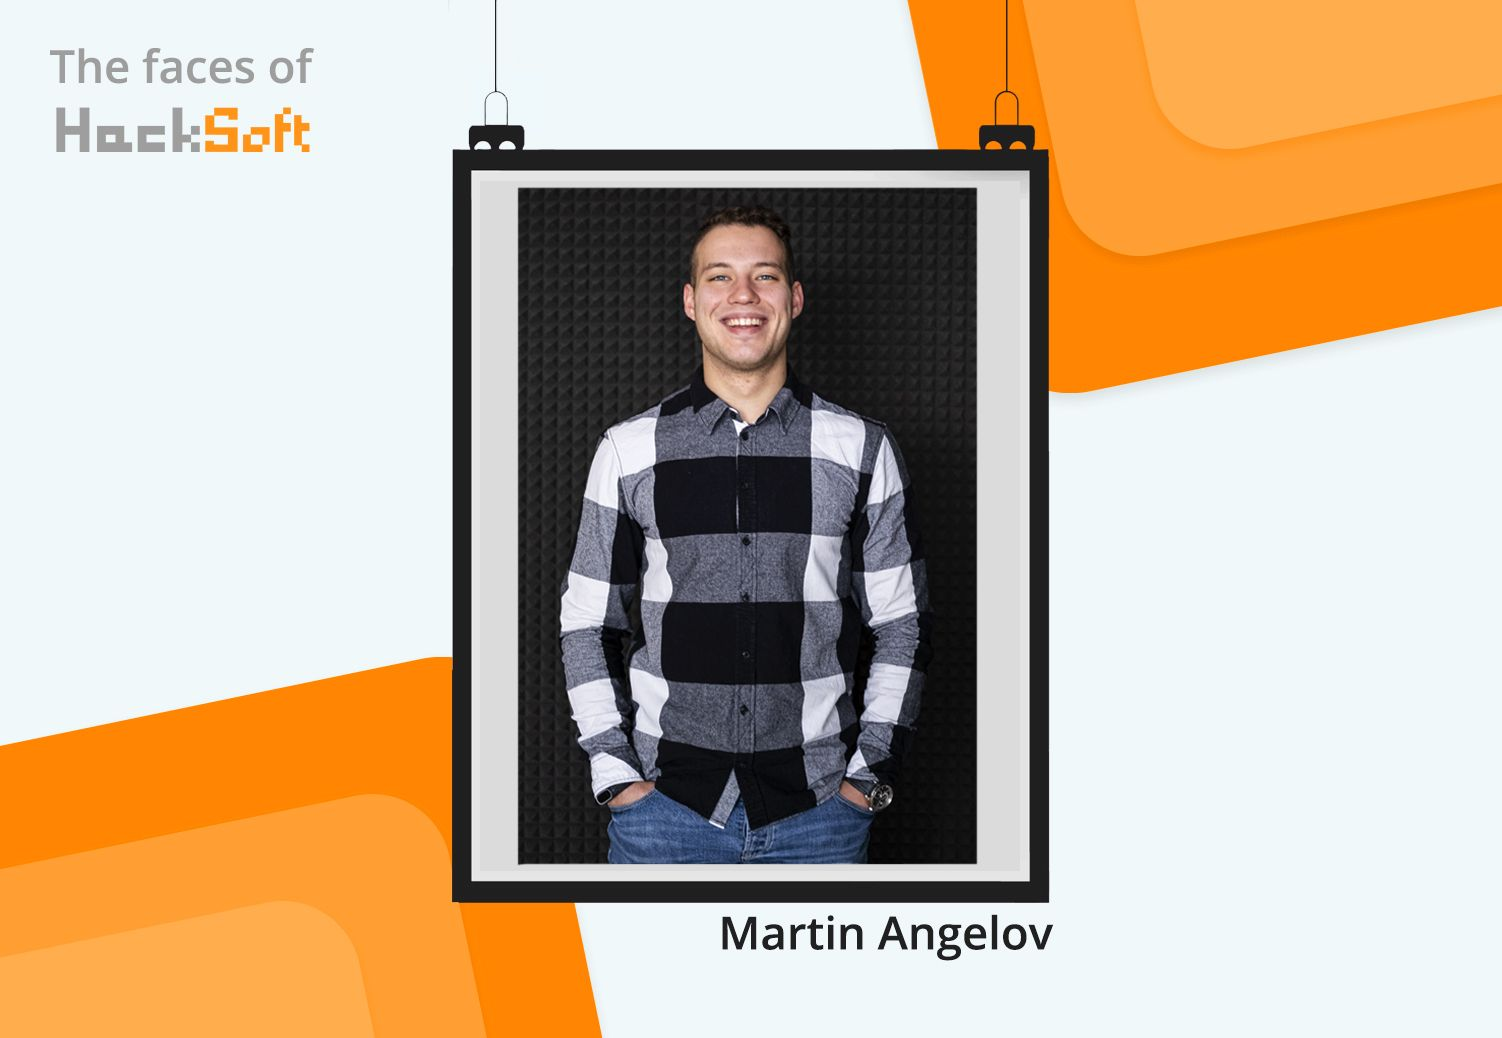 Behind any successful company, stands a motivated team. This week we would like to introduce you to Martin Angelov.